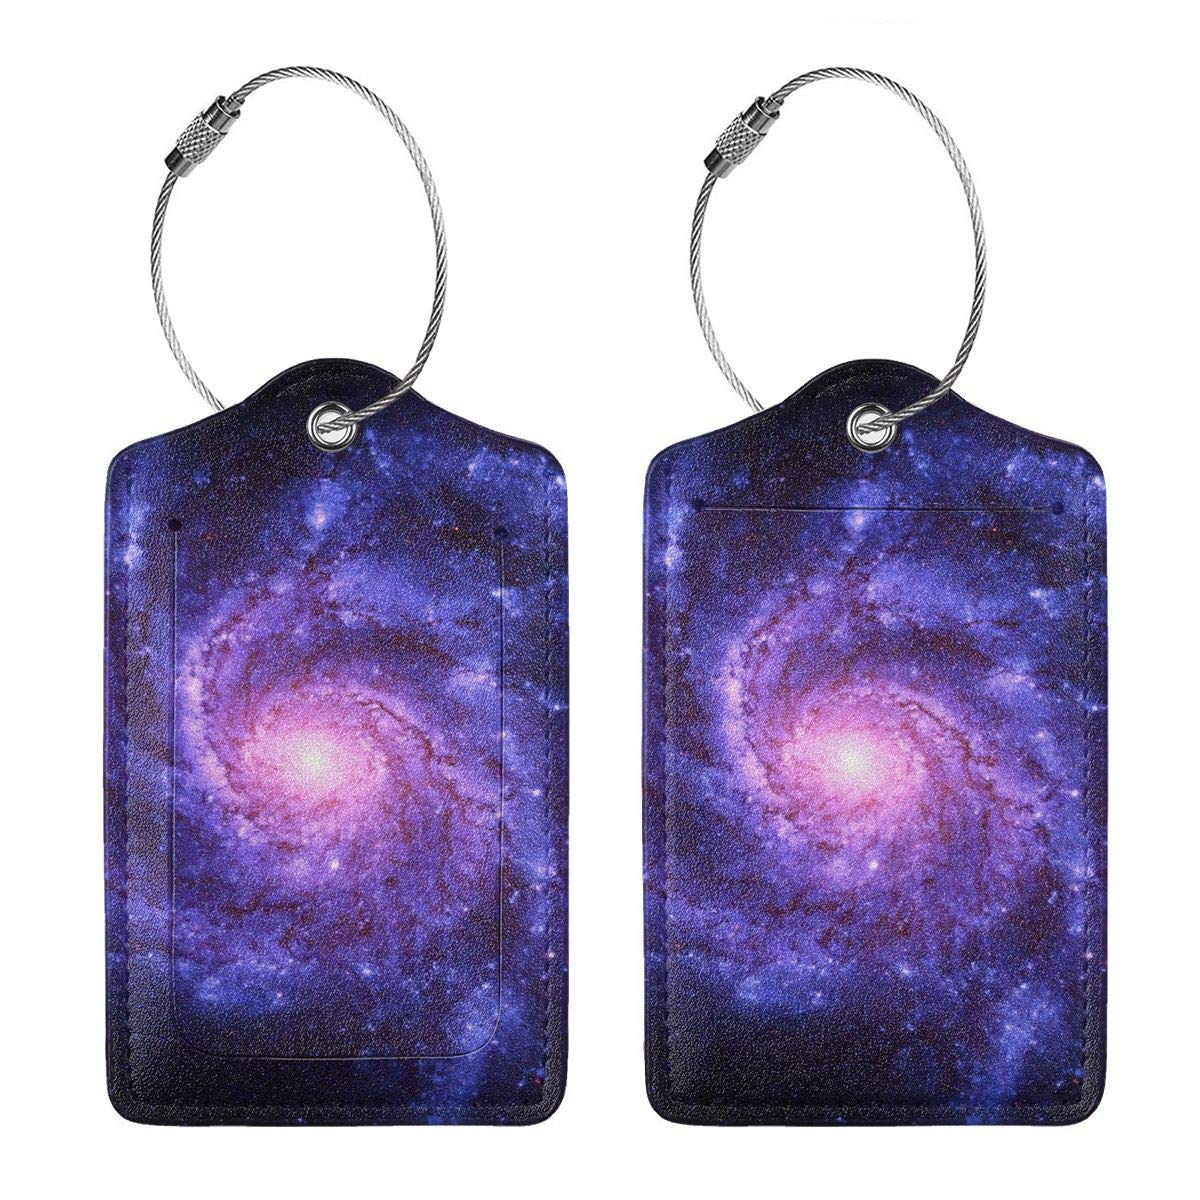 Space Galaxy Leather Luggage Tags Baggage Bag Instrument Tag Travel Labels Accessories with Privacy Cover